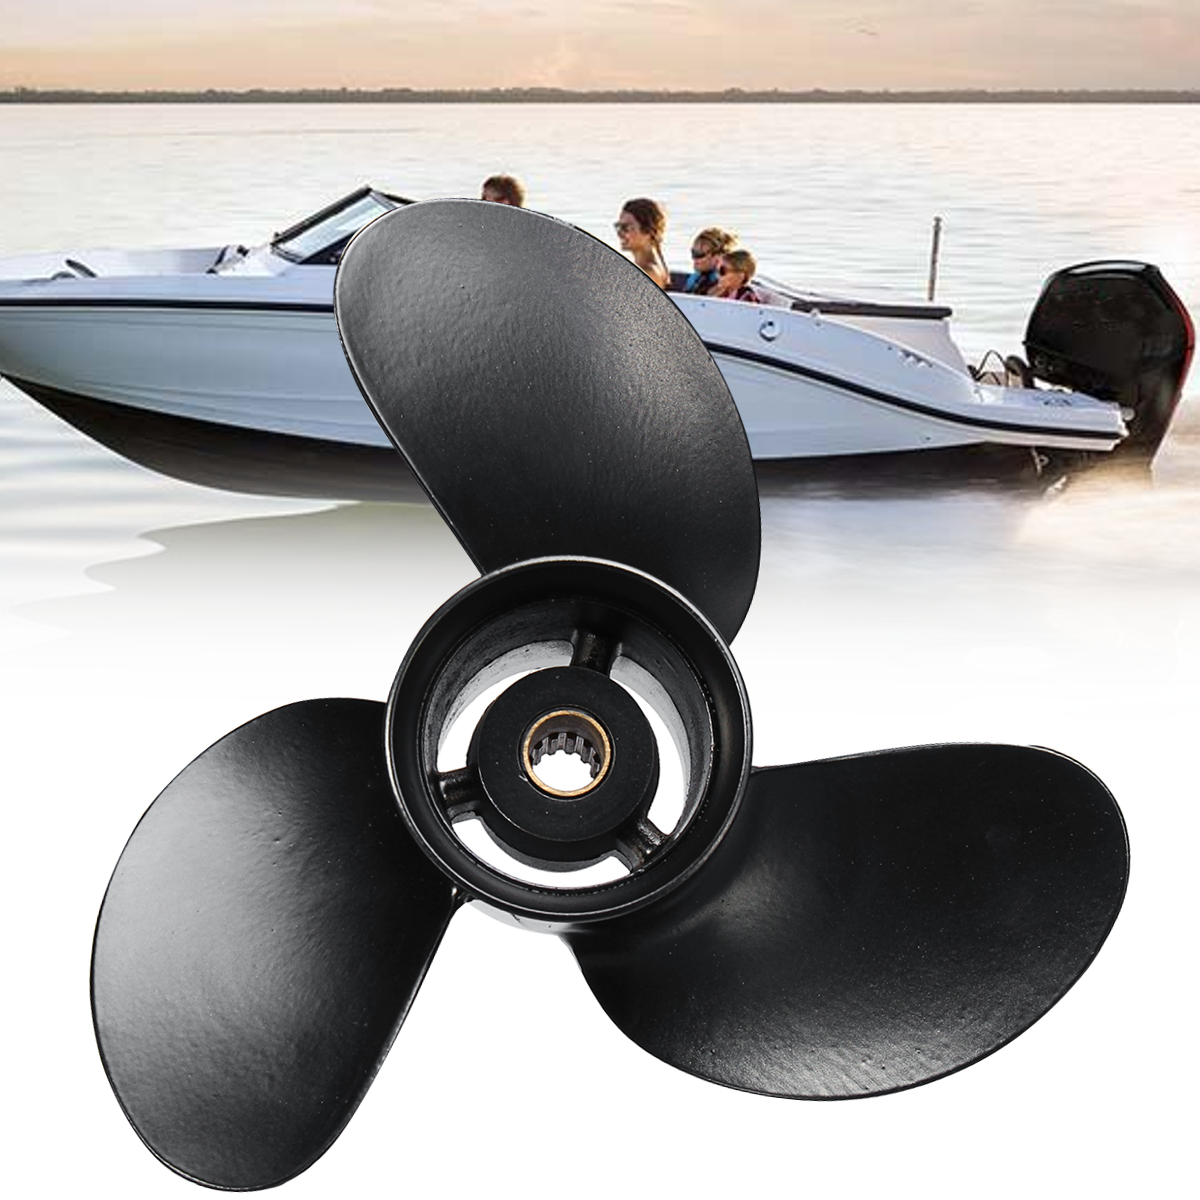 3B2W64517-1 8.5X9 Boat Outboard Propeller for Tohatsu Nissan-Mercury 8-9.8HP Aluminum Alloy 3 Blades Black 12 Spline Tooths цены онлайн